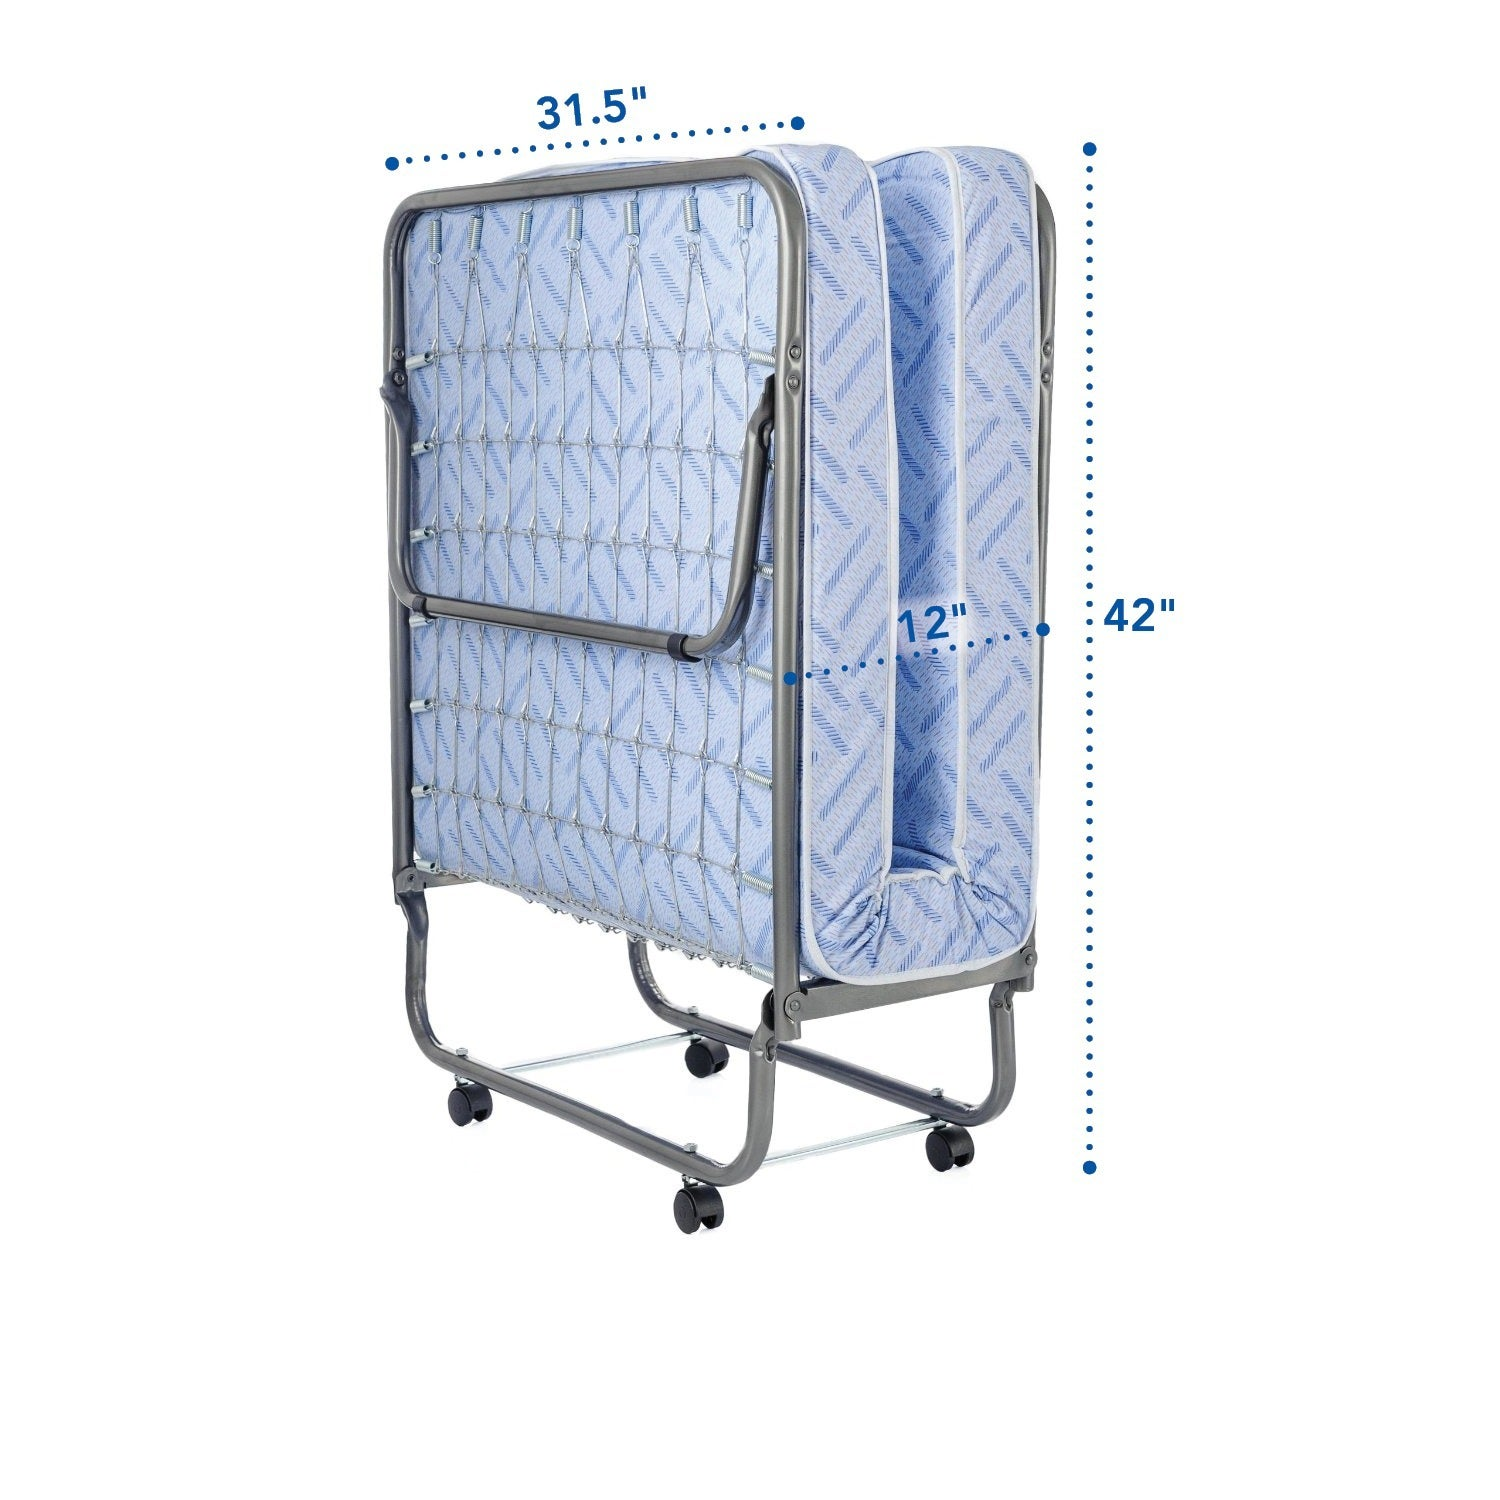 outdoor portable breaker grey desk rollaway lunch lounge office supermall okeefe teslin and bed cotton chair